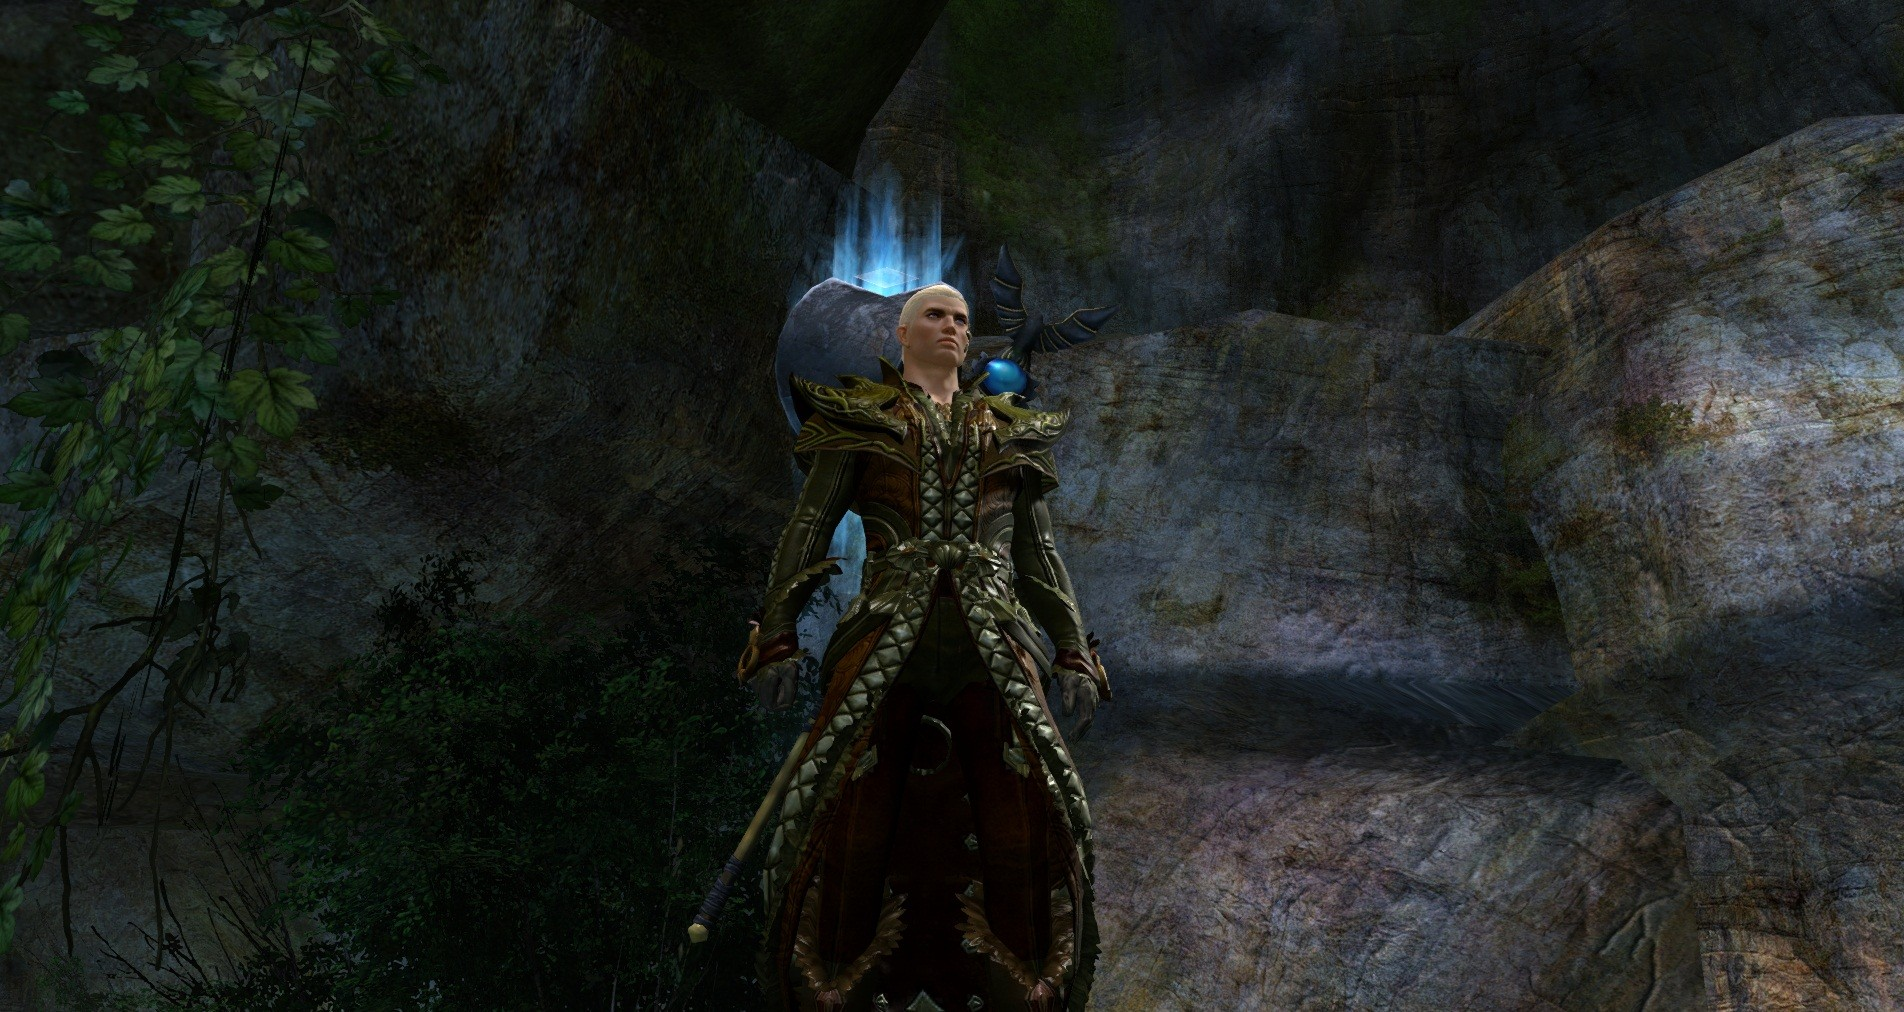 Guild Wars 2 - Grind? What grind? Full level 80 exotic Armor and Staff (some skins transmuted). No cash shop used, no exploits, no farming. 2 days to make.